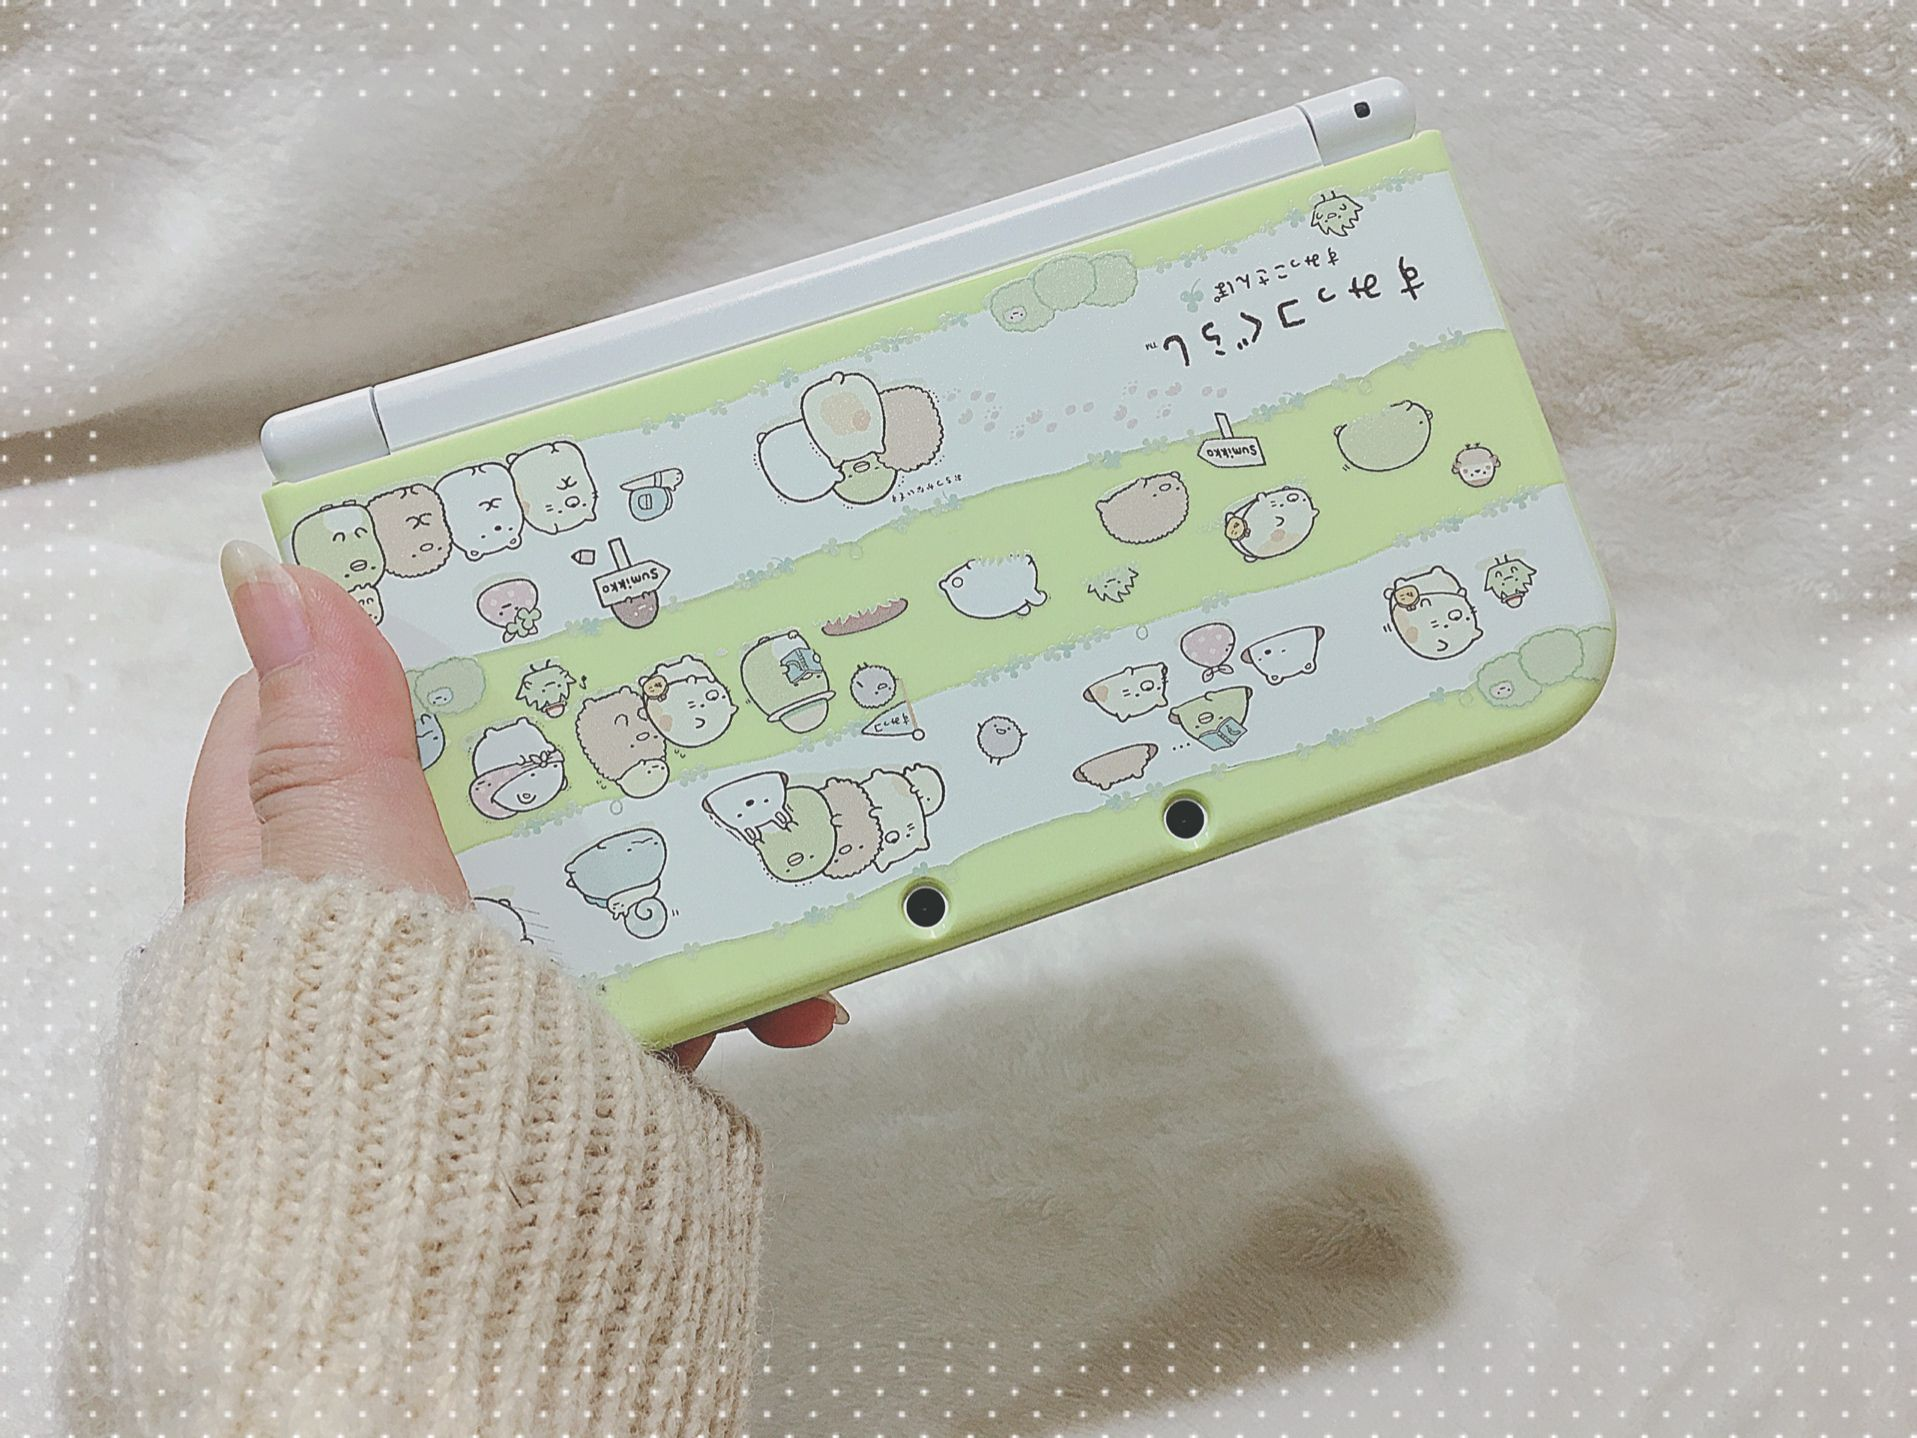 Stellount Girly Games Cute Games Nintendo Switch Accessories